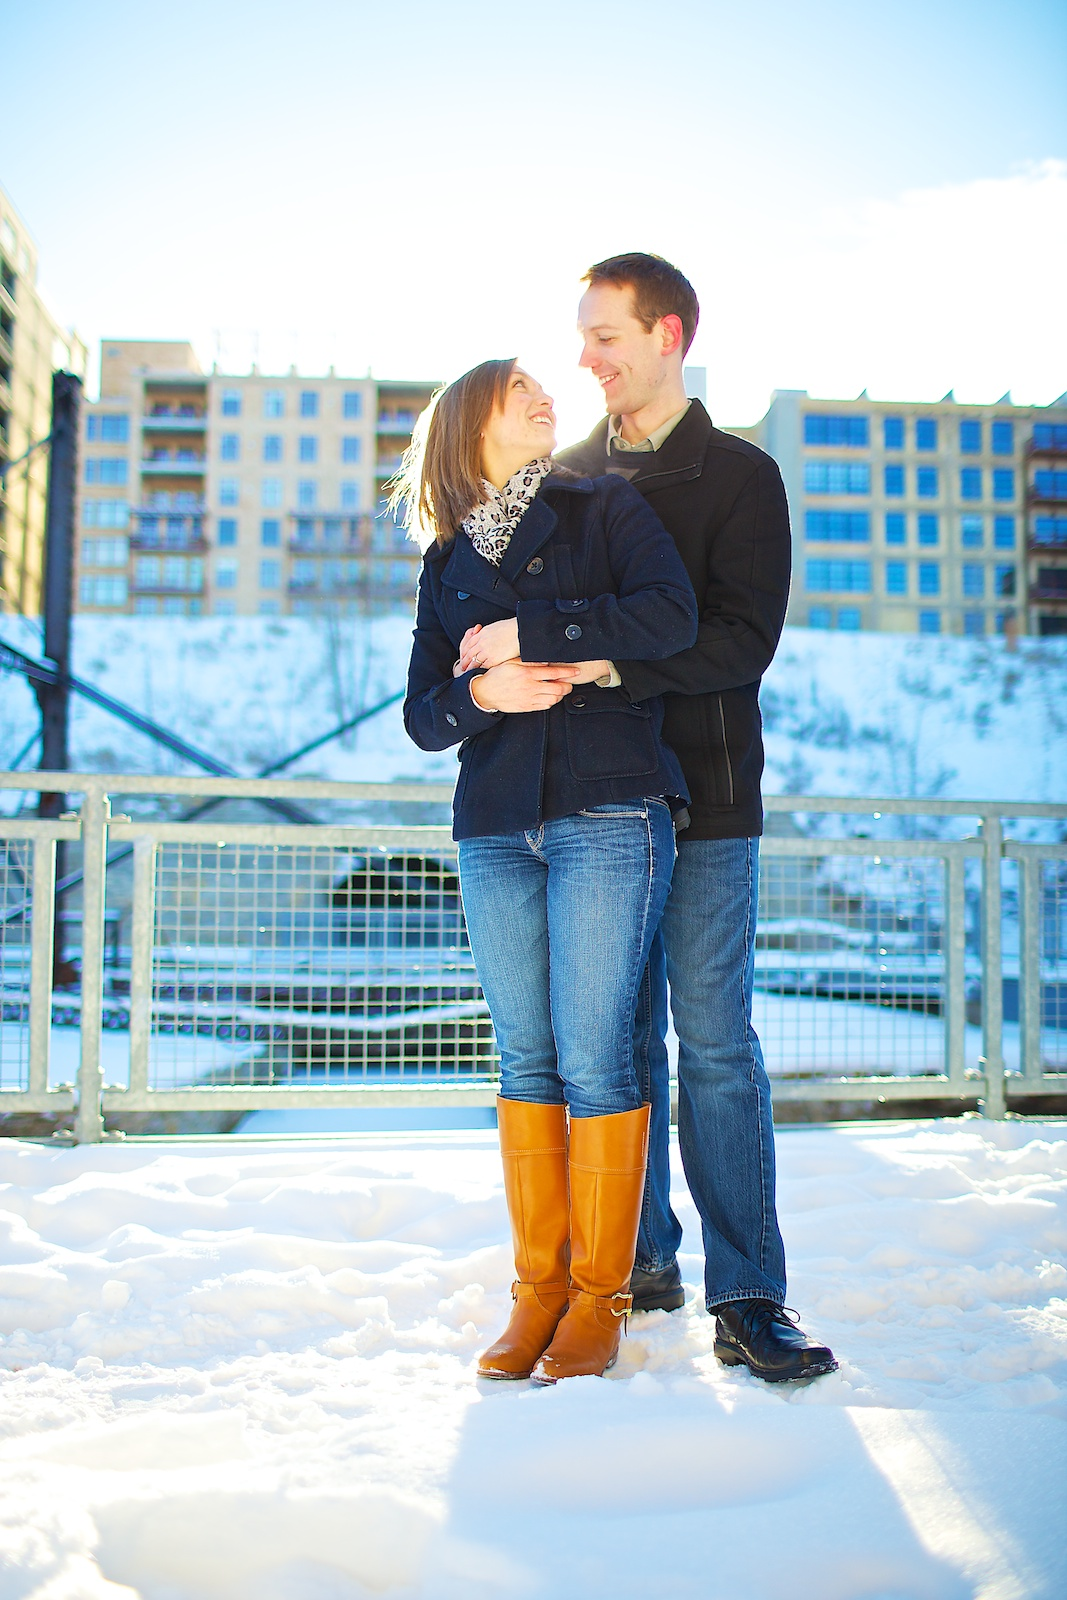 Minneapolis Winter Engagement Photos 8